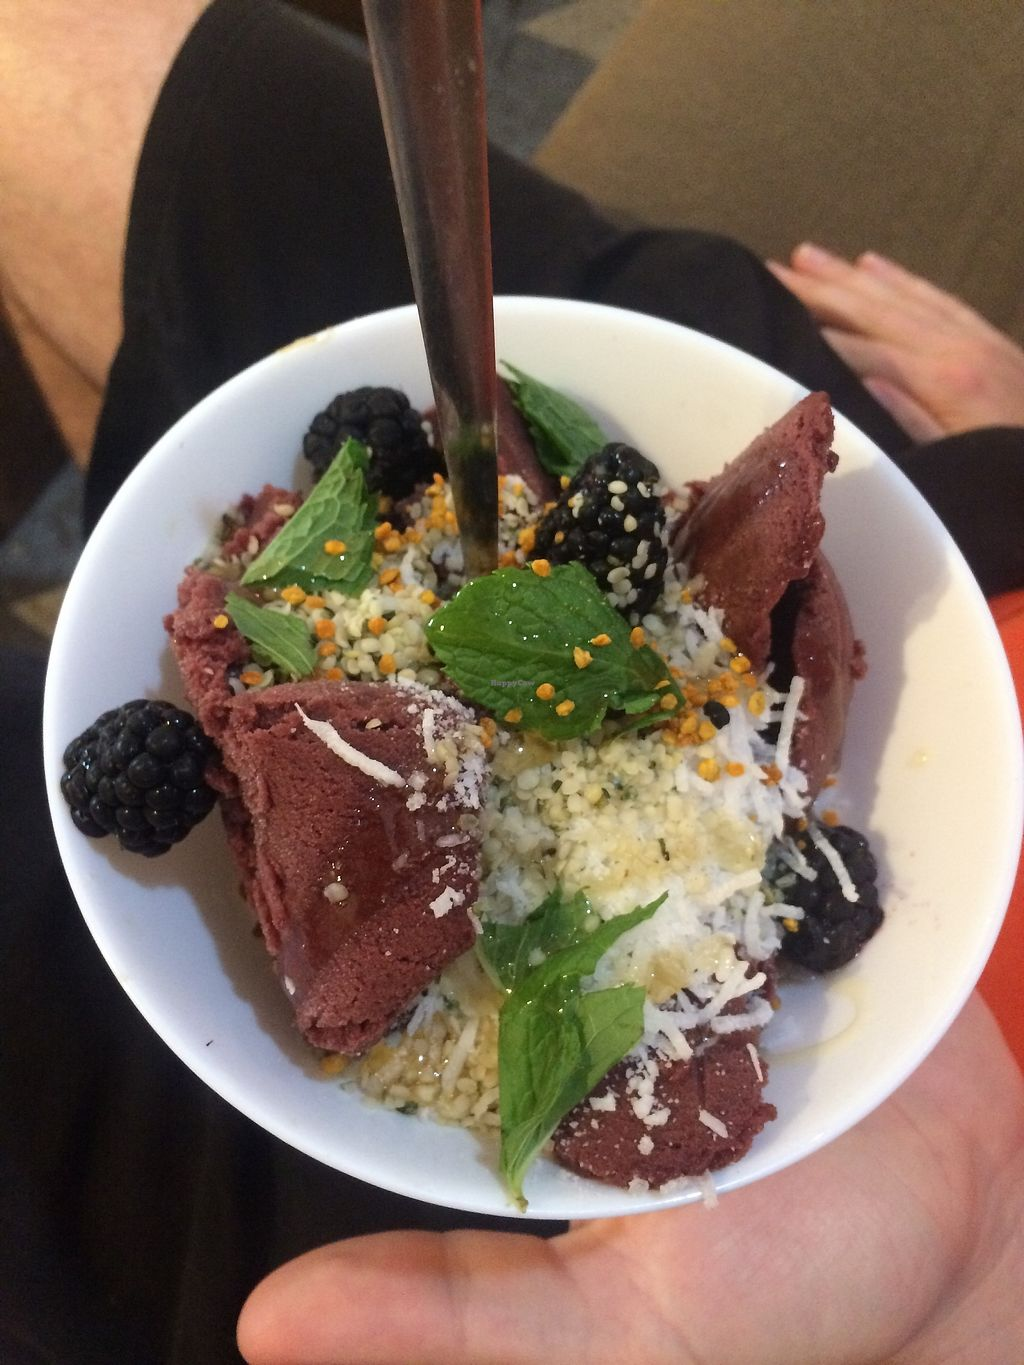 """Photo of The Nest  by <a href=""""/members/profile/fullbellyhappyheart"""">fullbellyhappyheart</a> <br/>Acai bowl with fresh berries, coconut, and hemp granola <br/> June 20, 2017  - <a href='/contact/abuse/image/94437/271493'>Report</a>"""